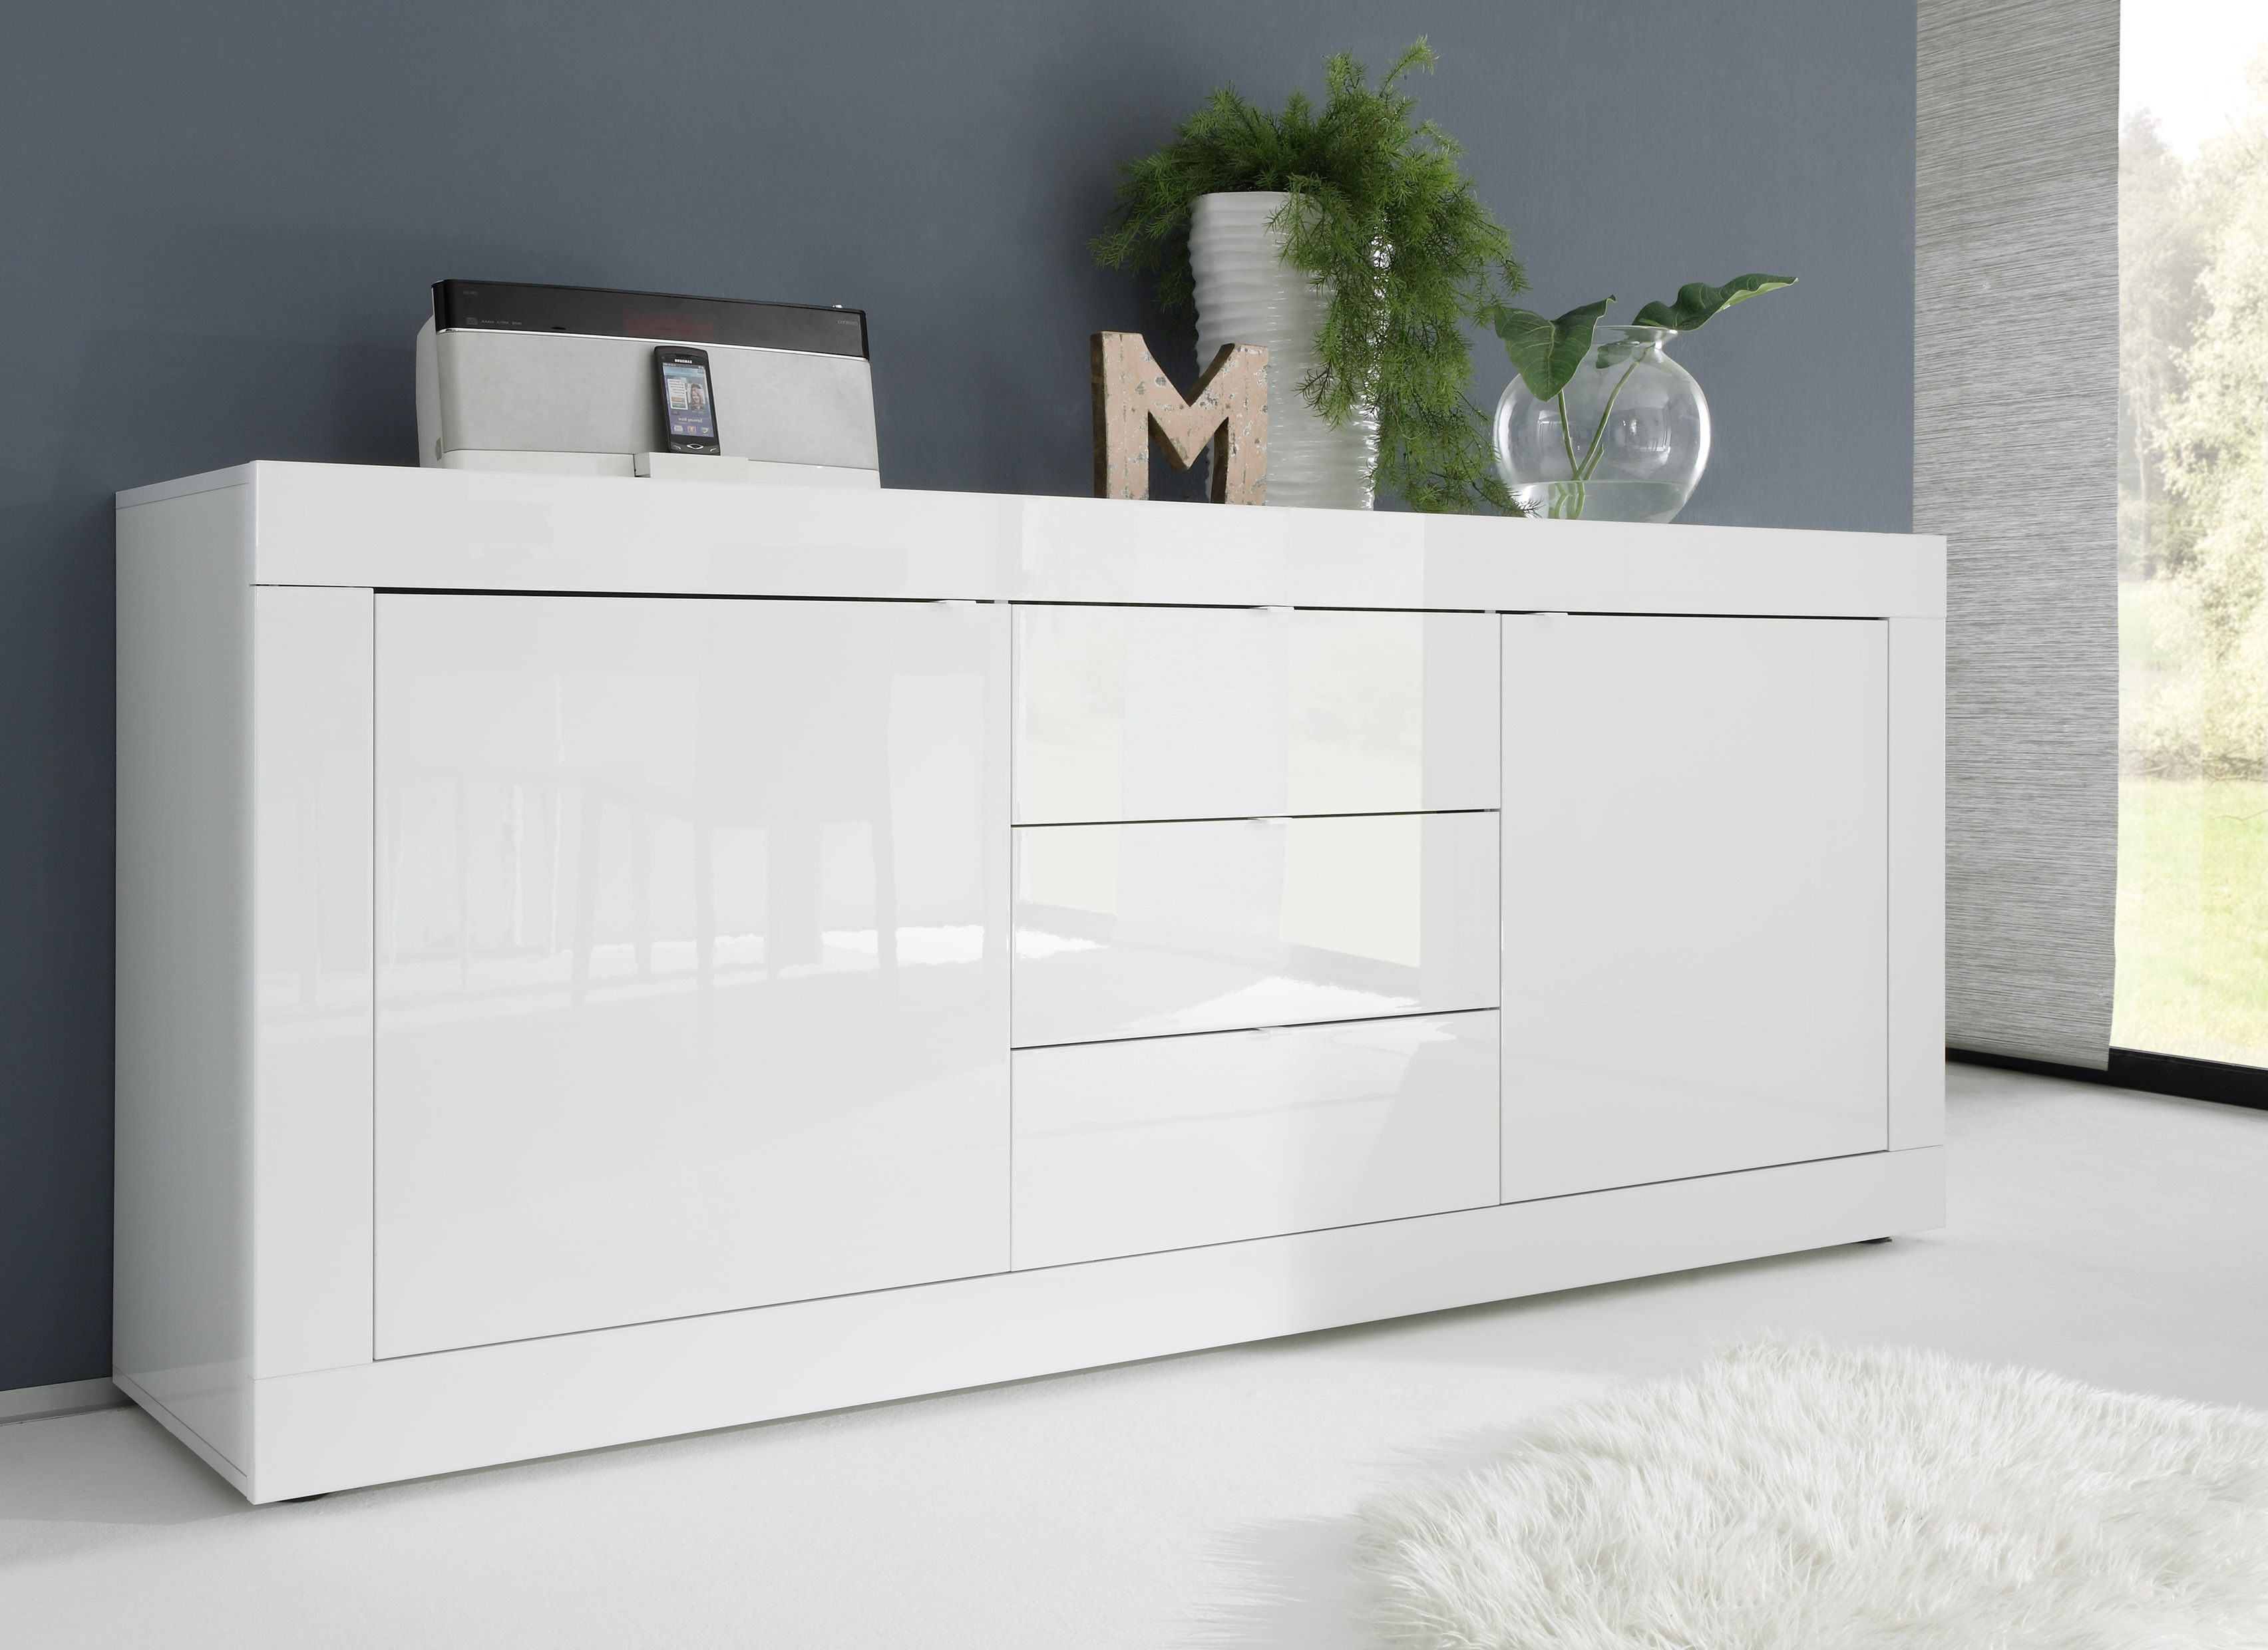 Basic Contemporary White Glossy Lacquer Dining Buffet | B With Regard To Modern Lacquer 2 Door 3 Drawer Buffets (View 15 of 20)